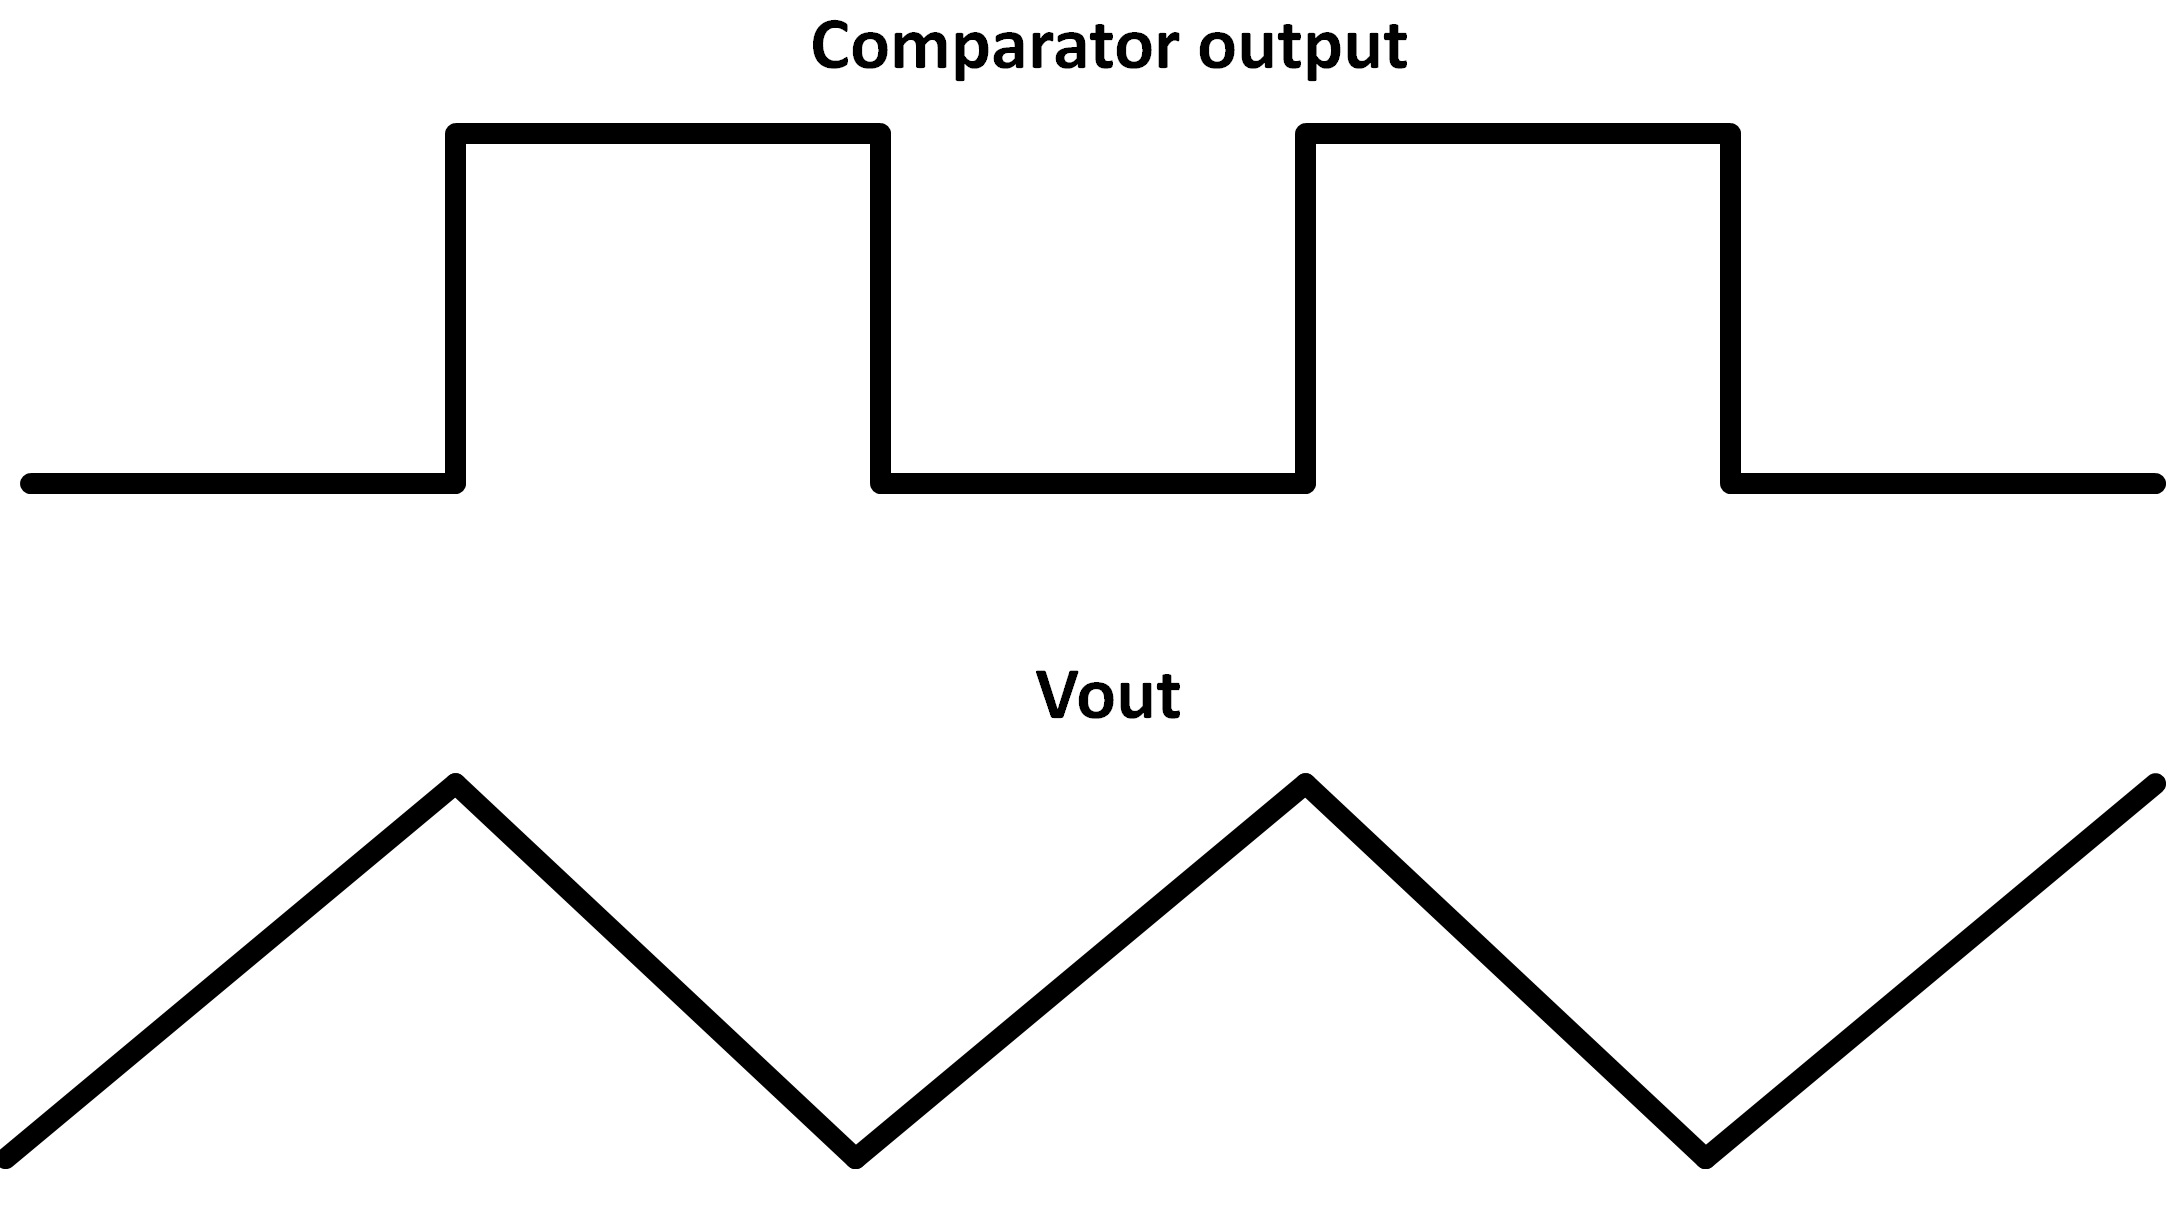 controlled with phase shift capacitor capacitor not provided